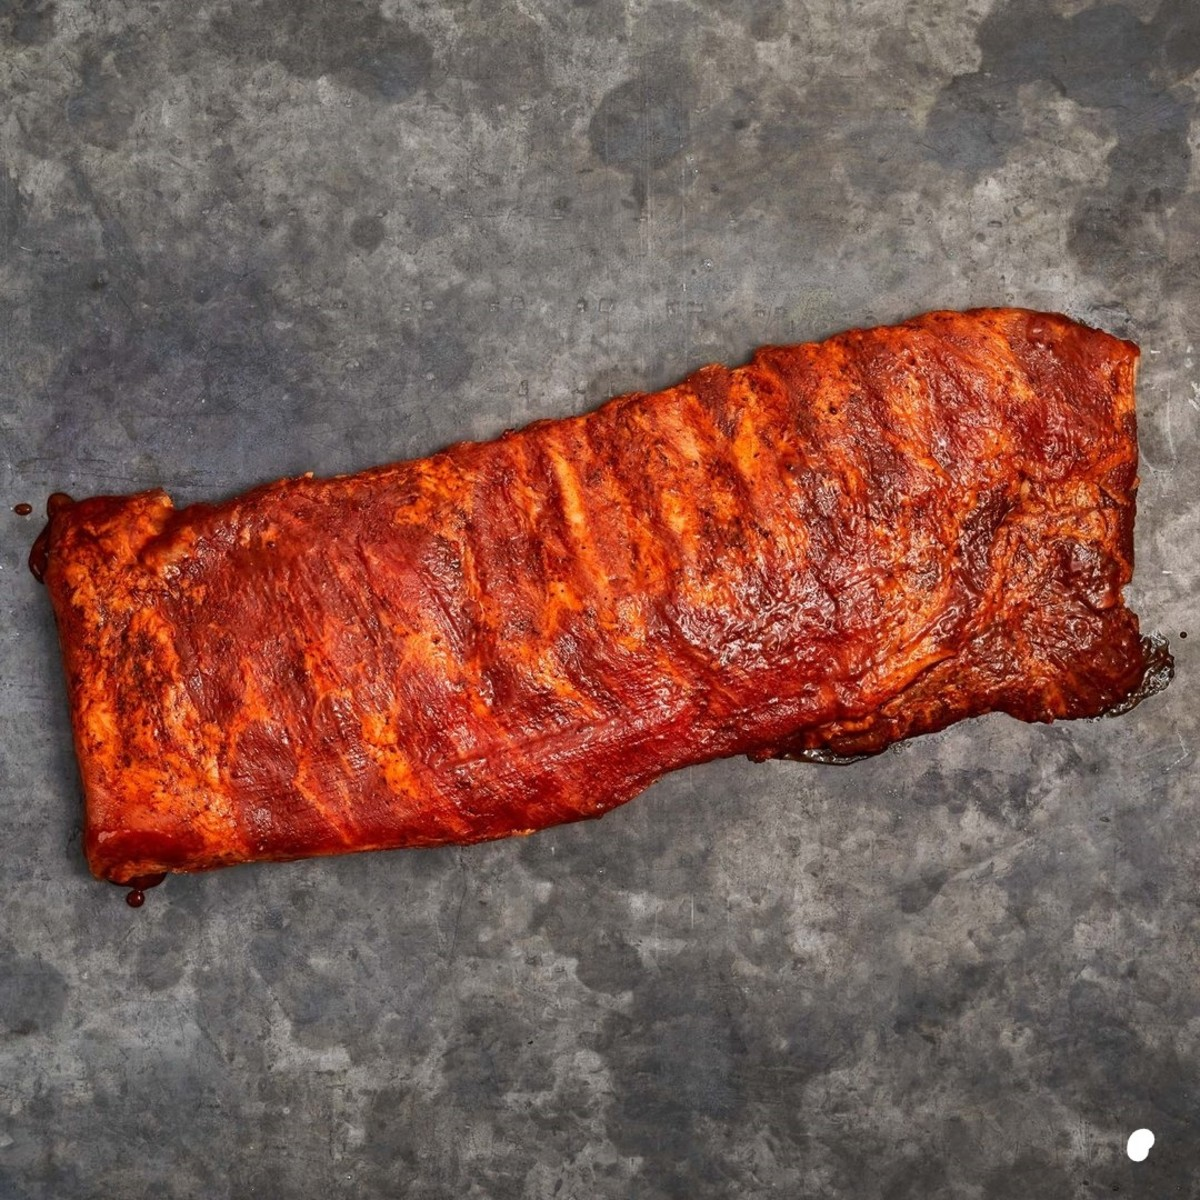 These ribs were smoked using my B.B.Q Rub that is packed with great flavor .